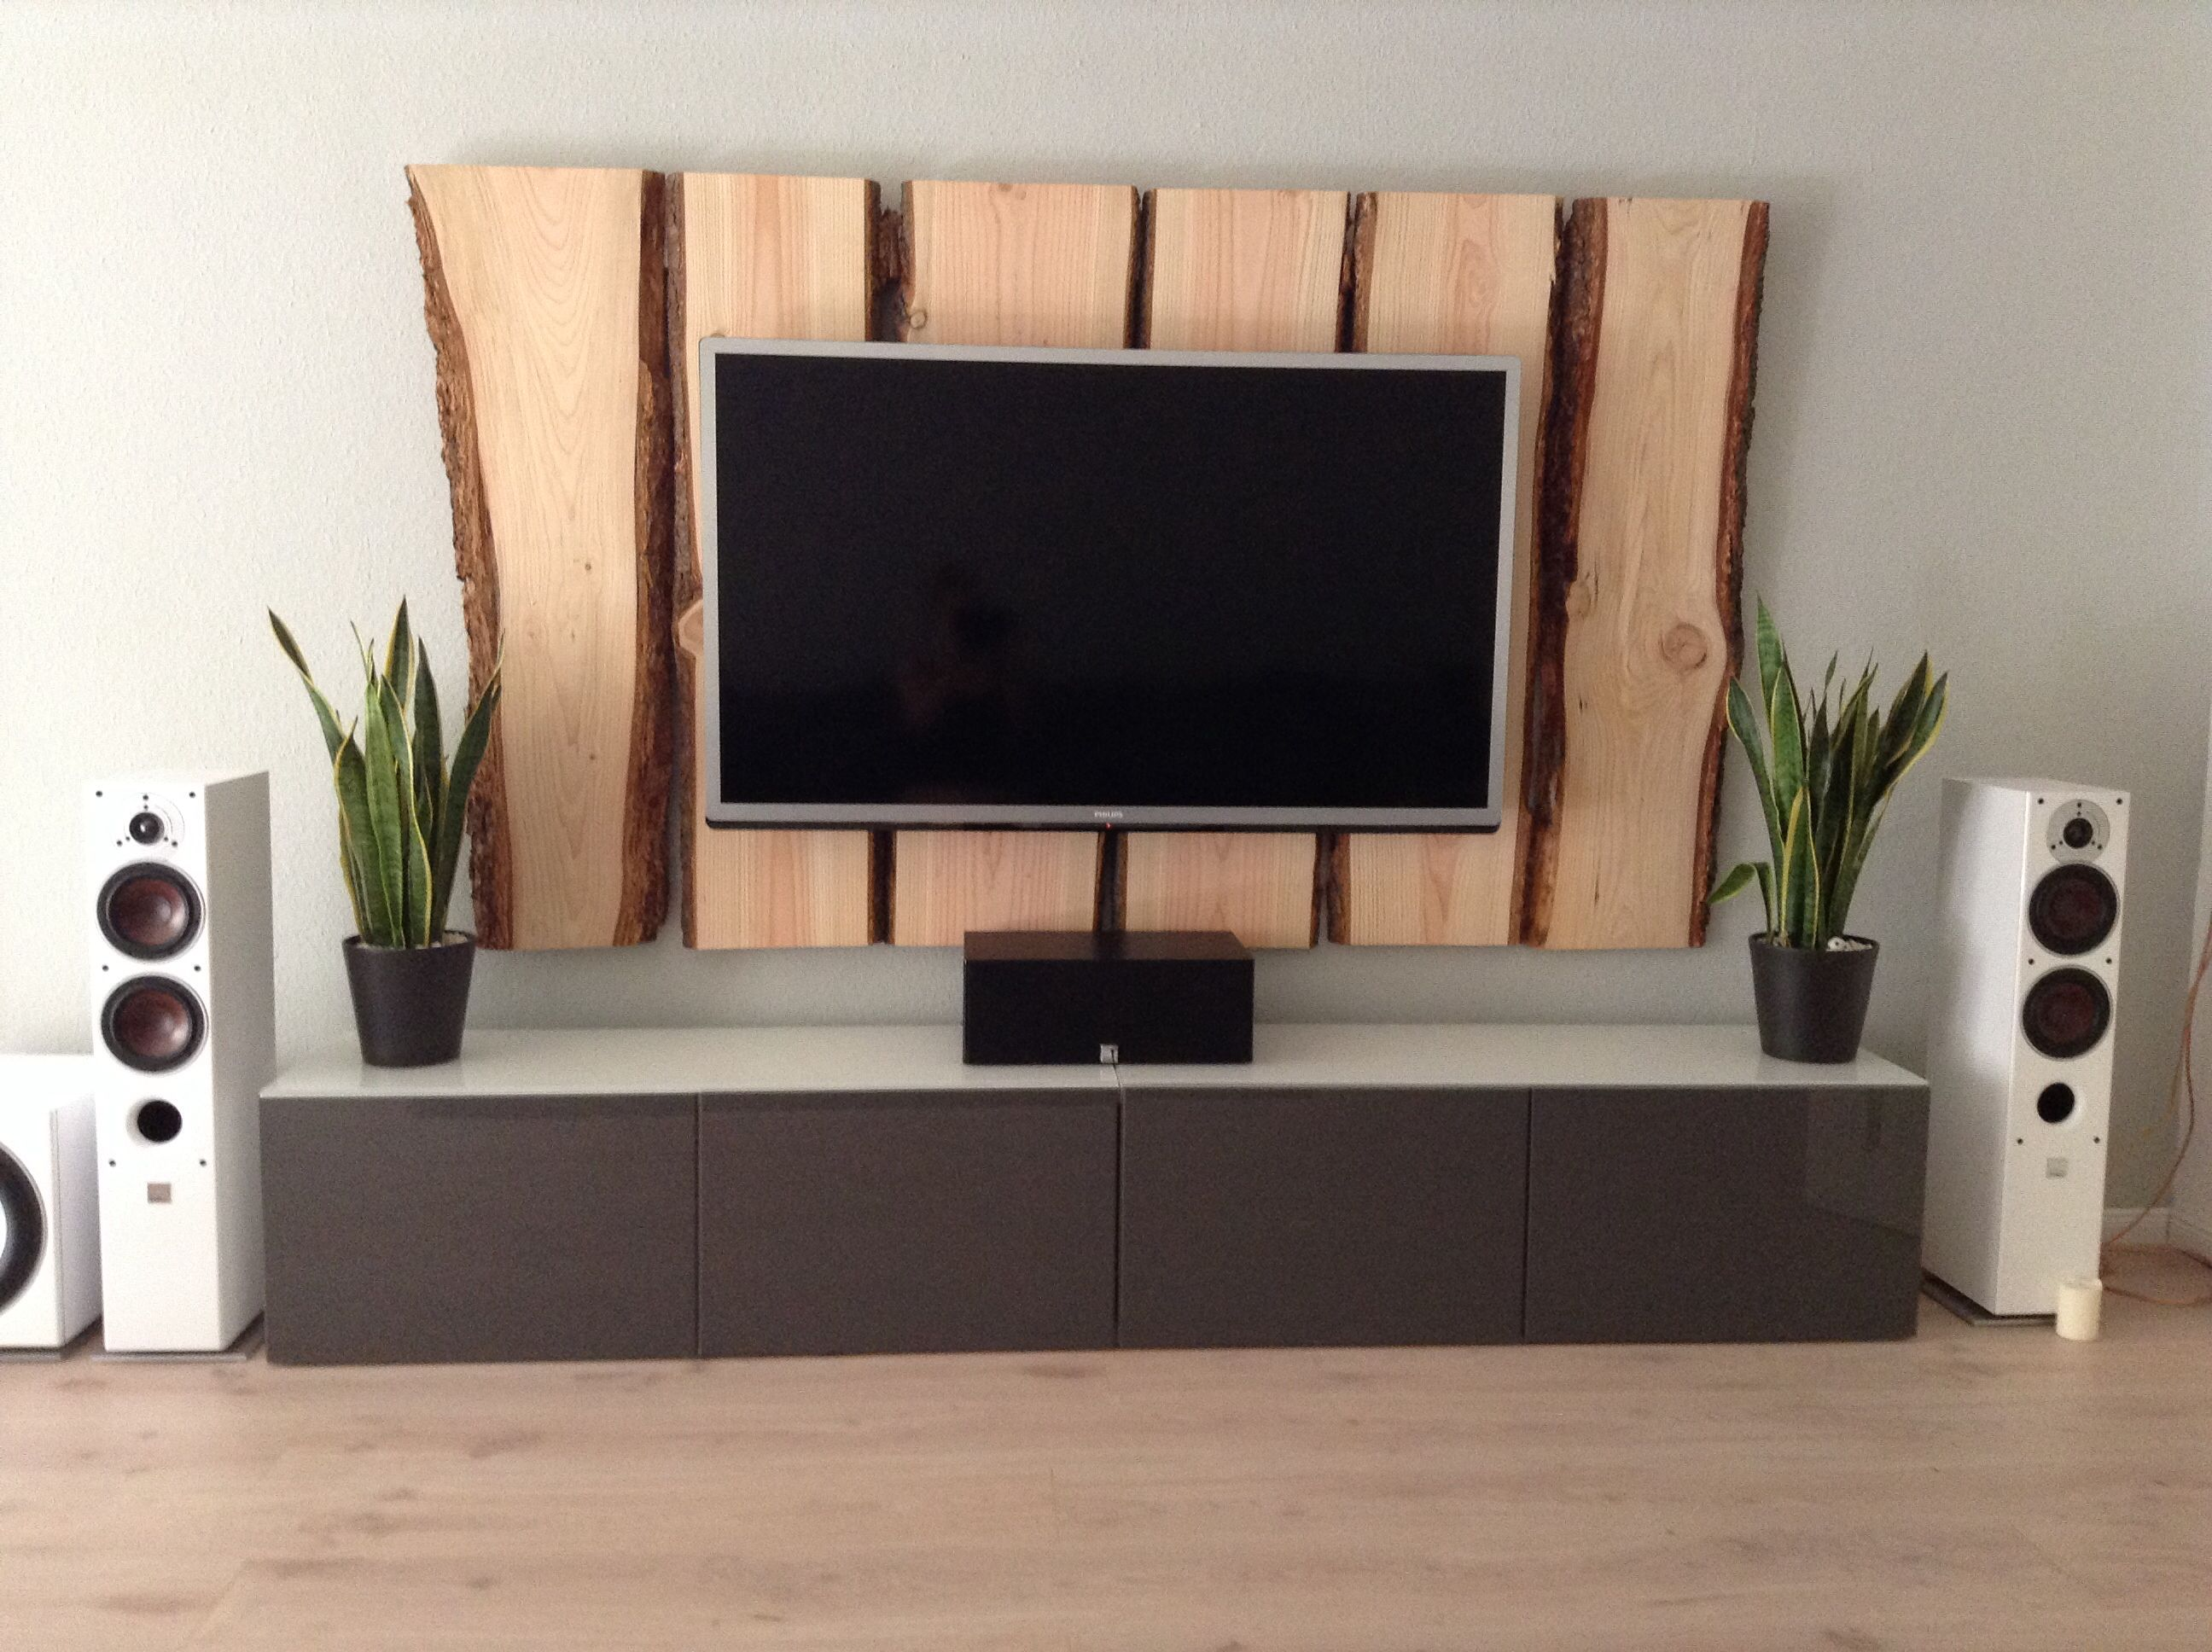 holz tv wand tv wall wood deko und so pinterest tv. Black Bedroom Furniture Sets. Home Design Ideas